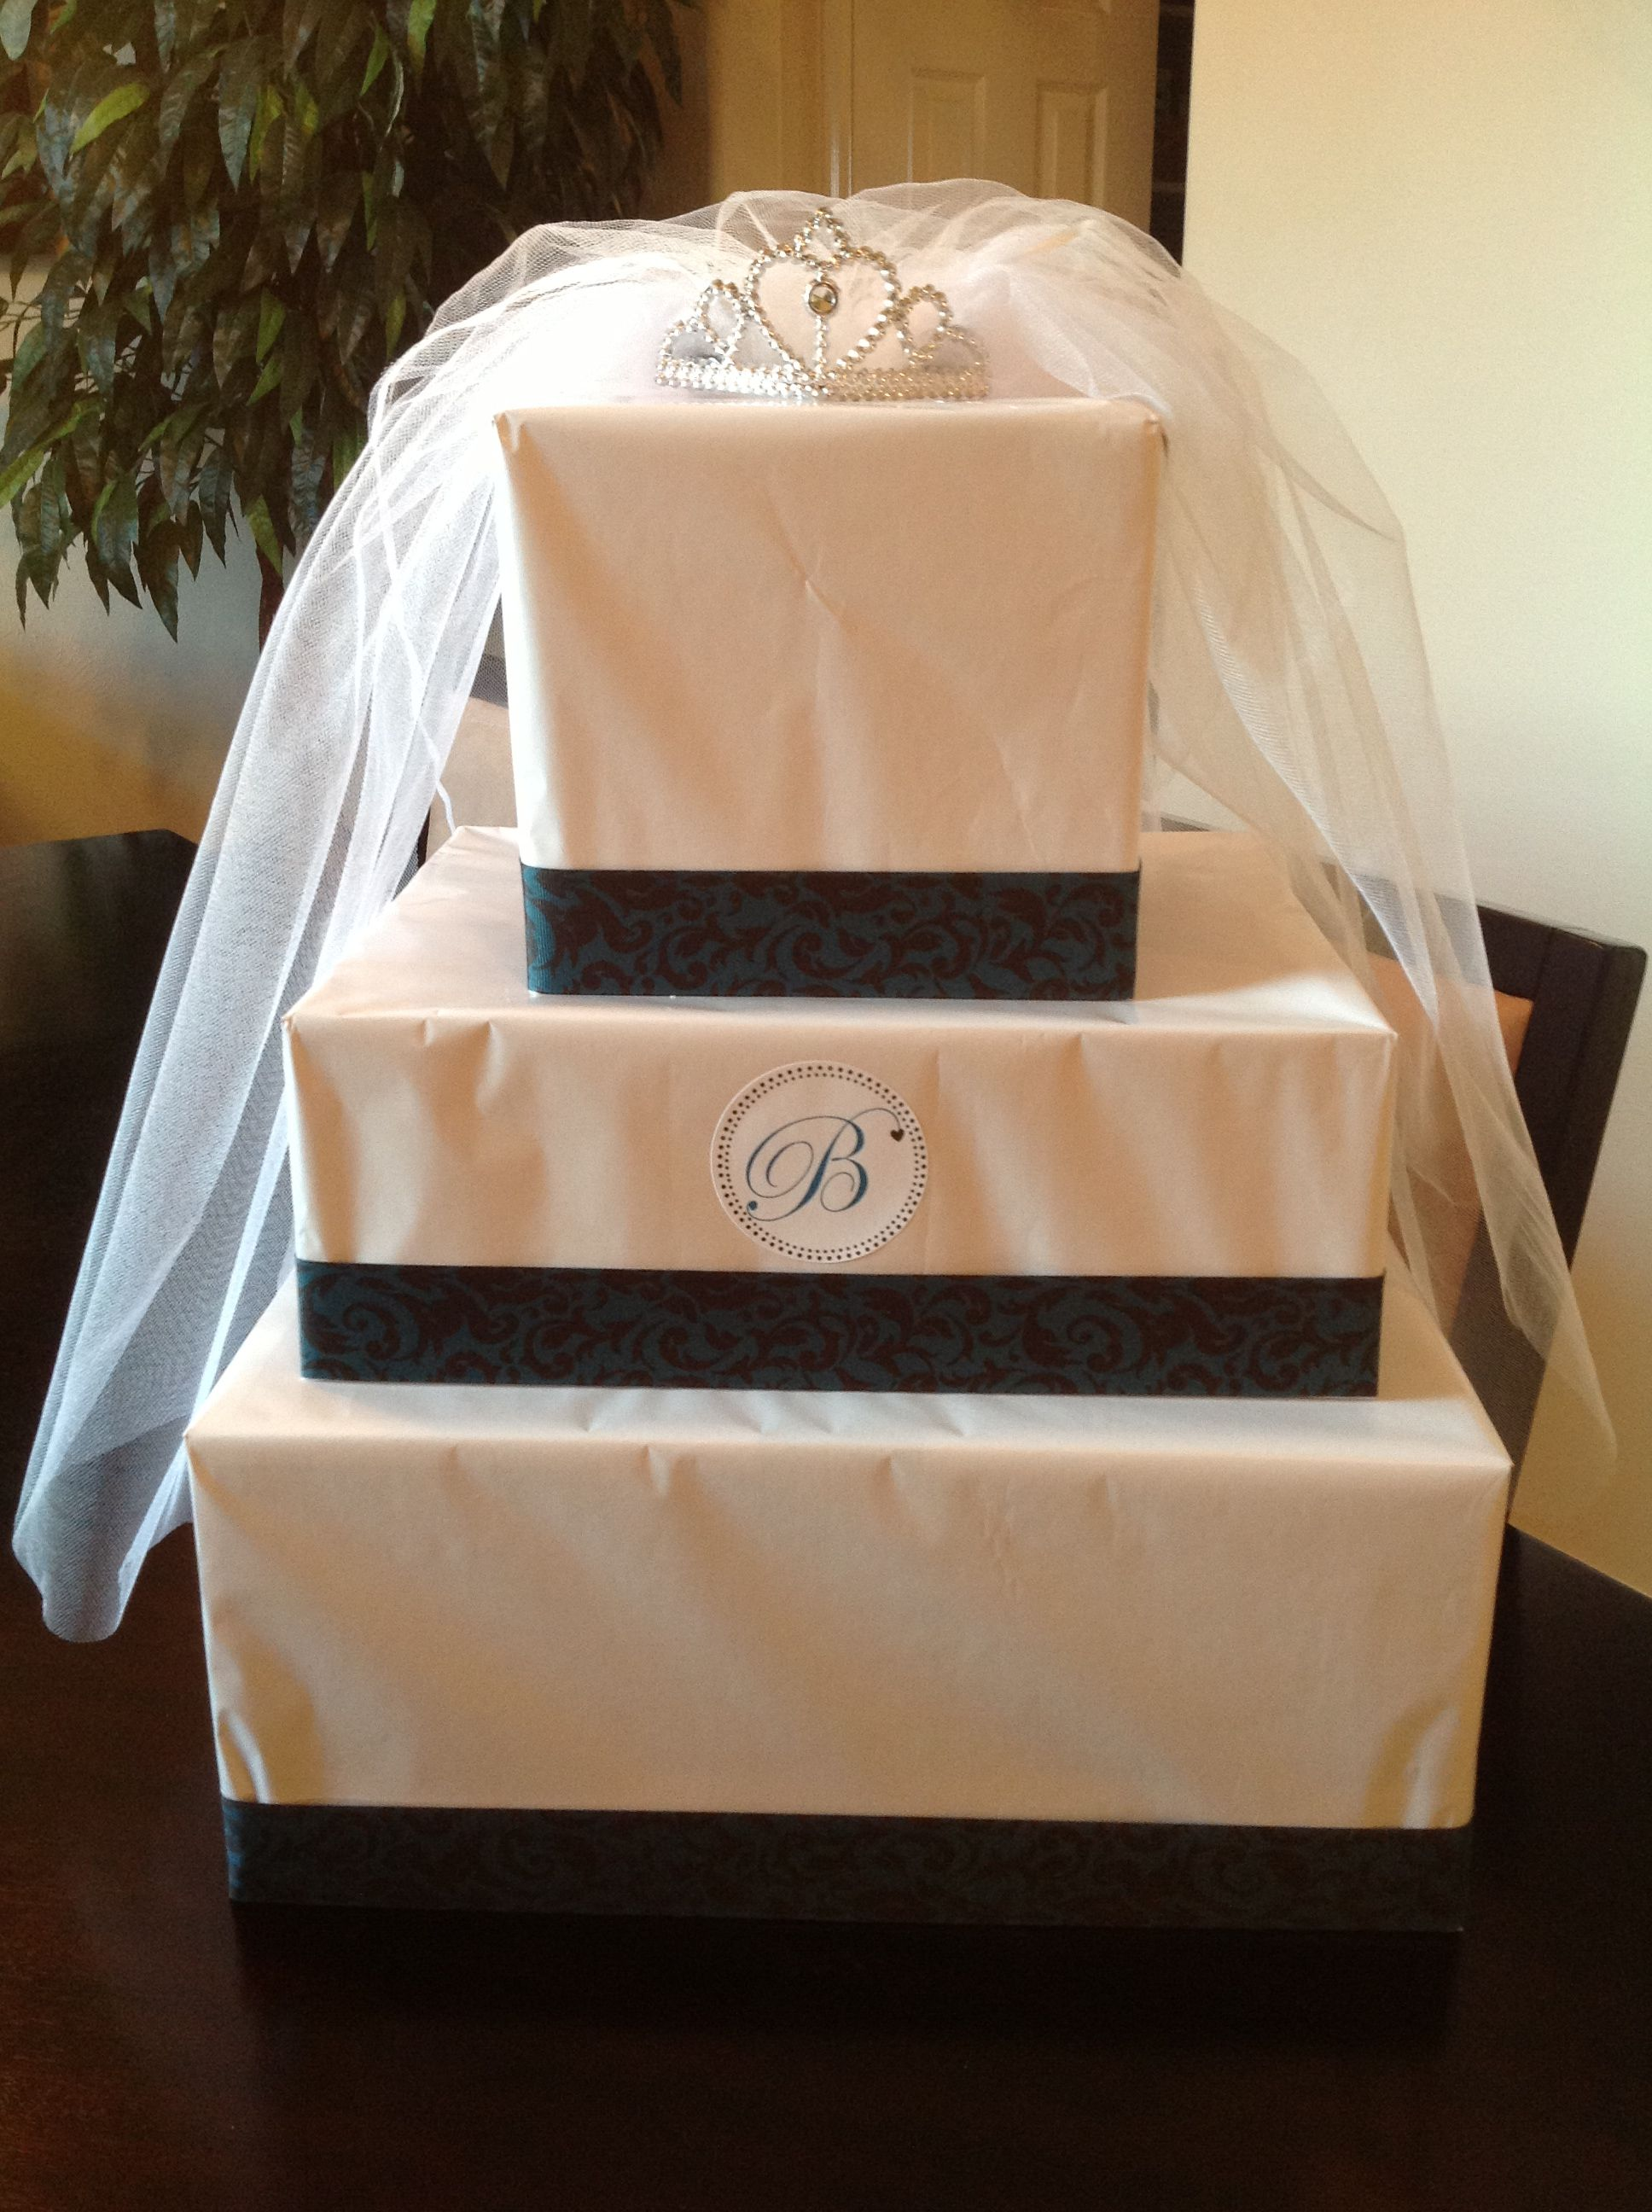 Bridal shower gift wrapping idea. Gift made to look like a